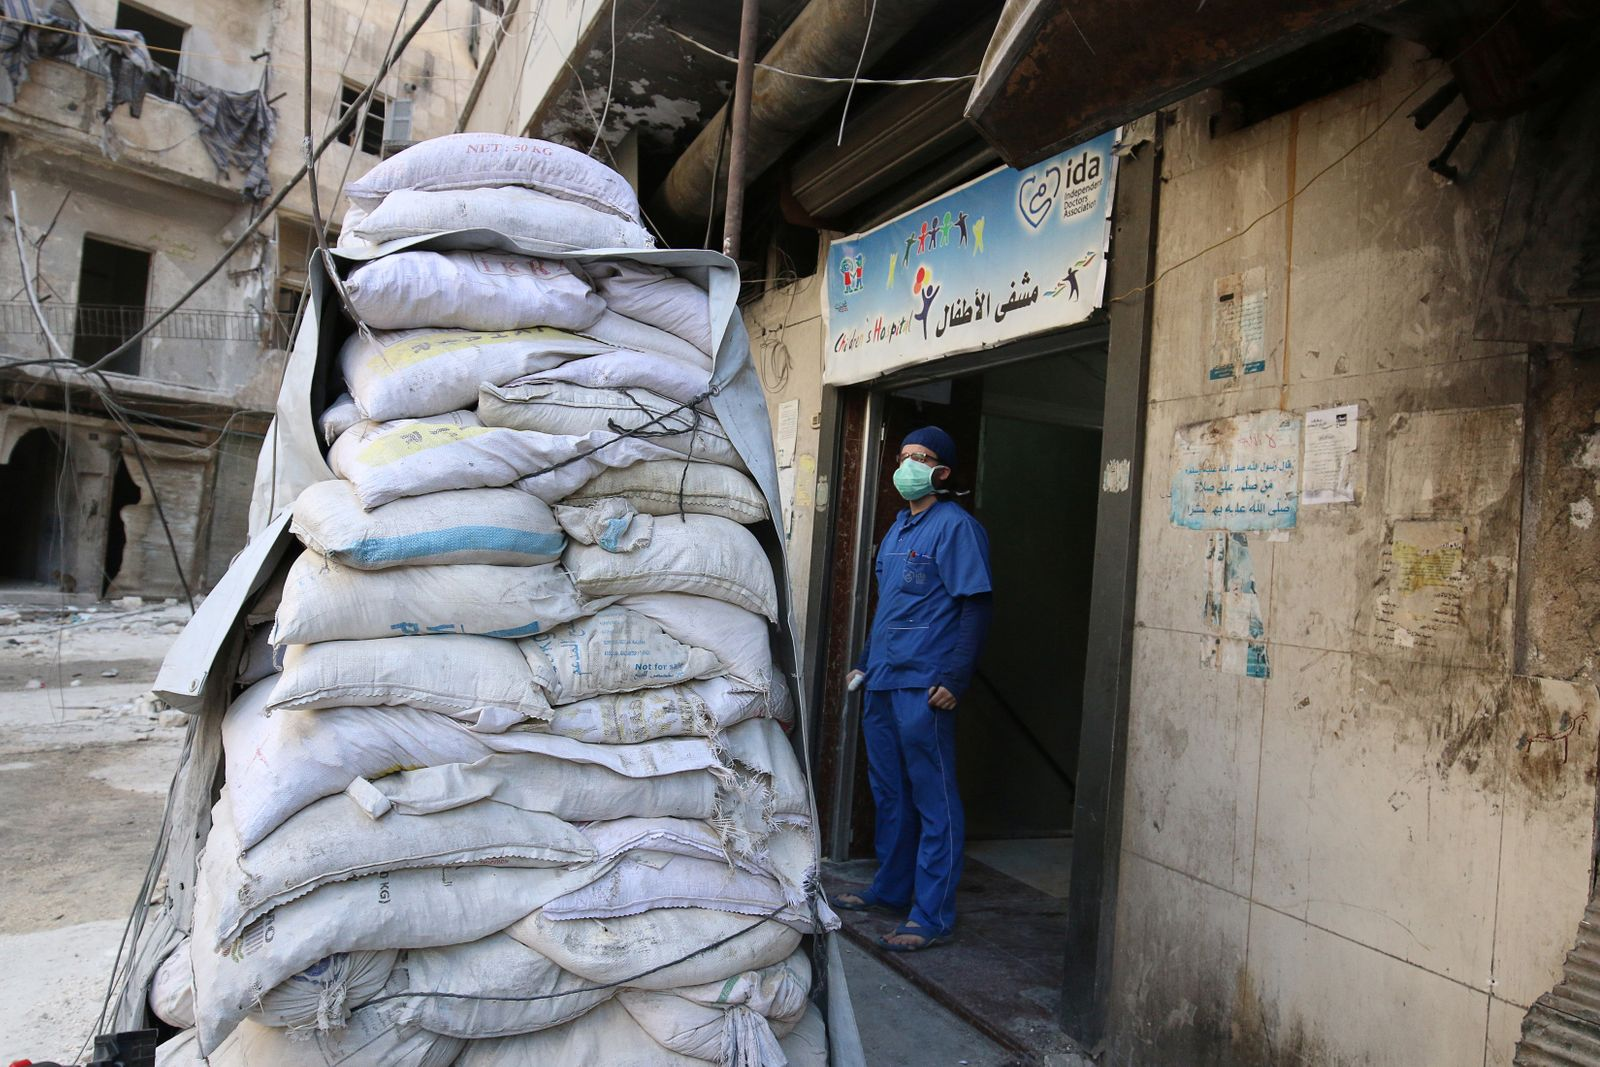 A medic stands behind sandbags in the damaged al-Hakeem hospital, in the rebel-held besieged area of Aleppo